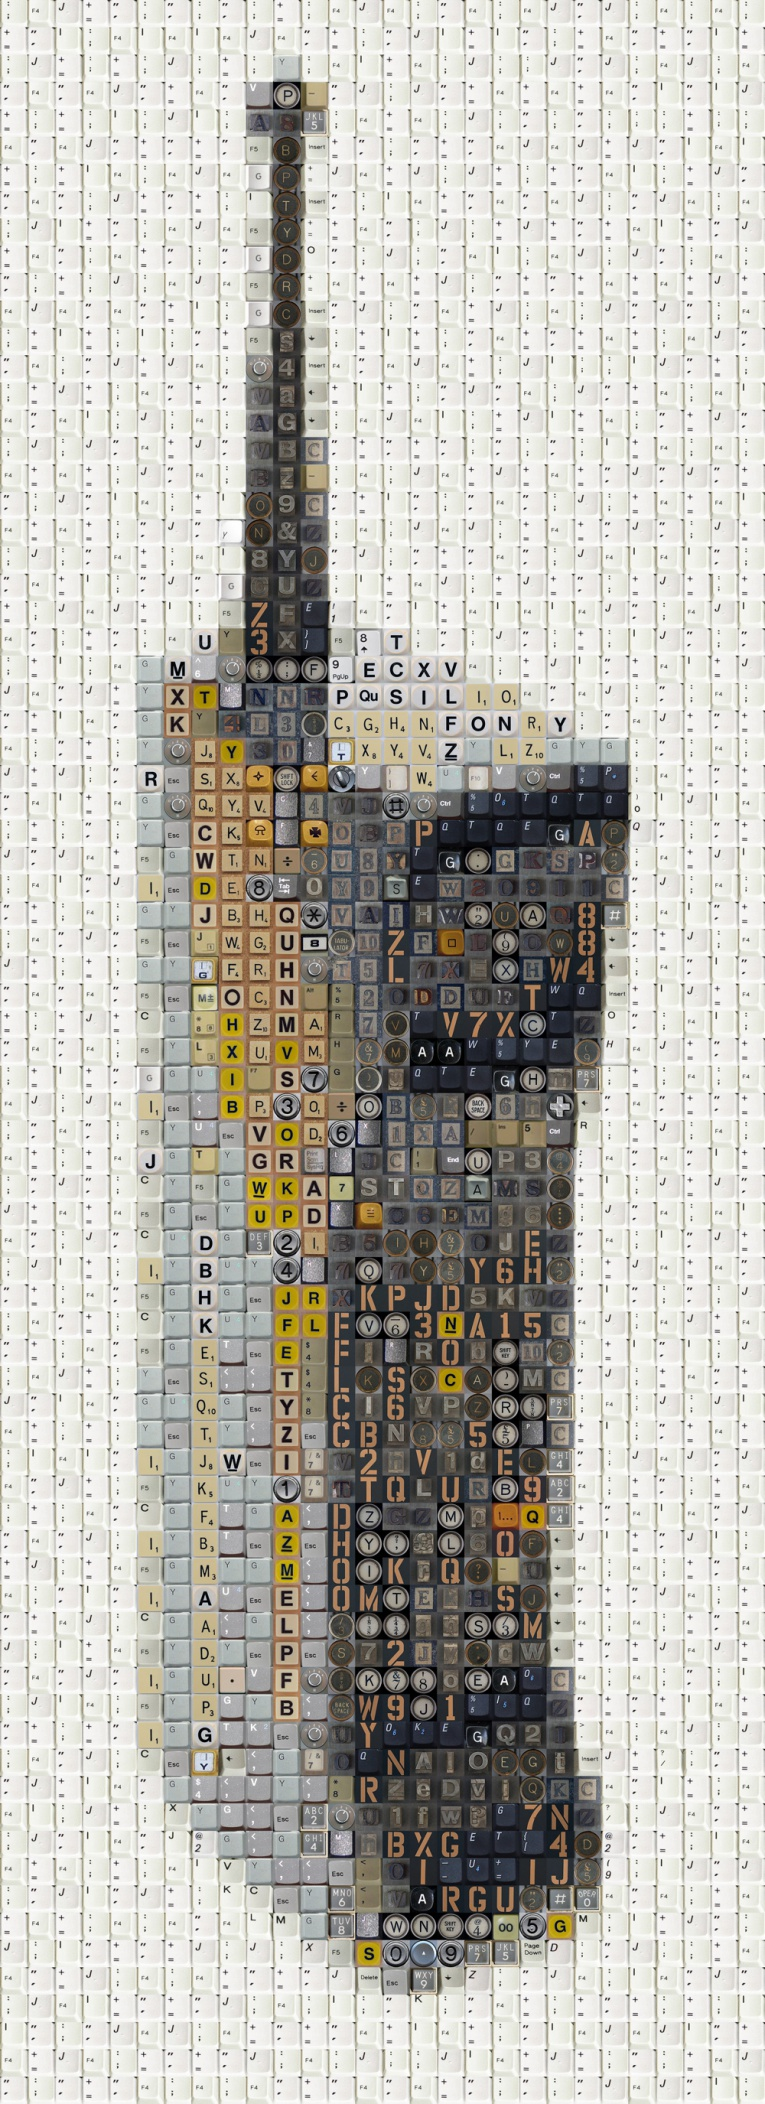 Guy Whitby_keyboard art_9